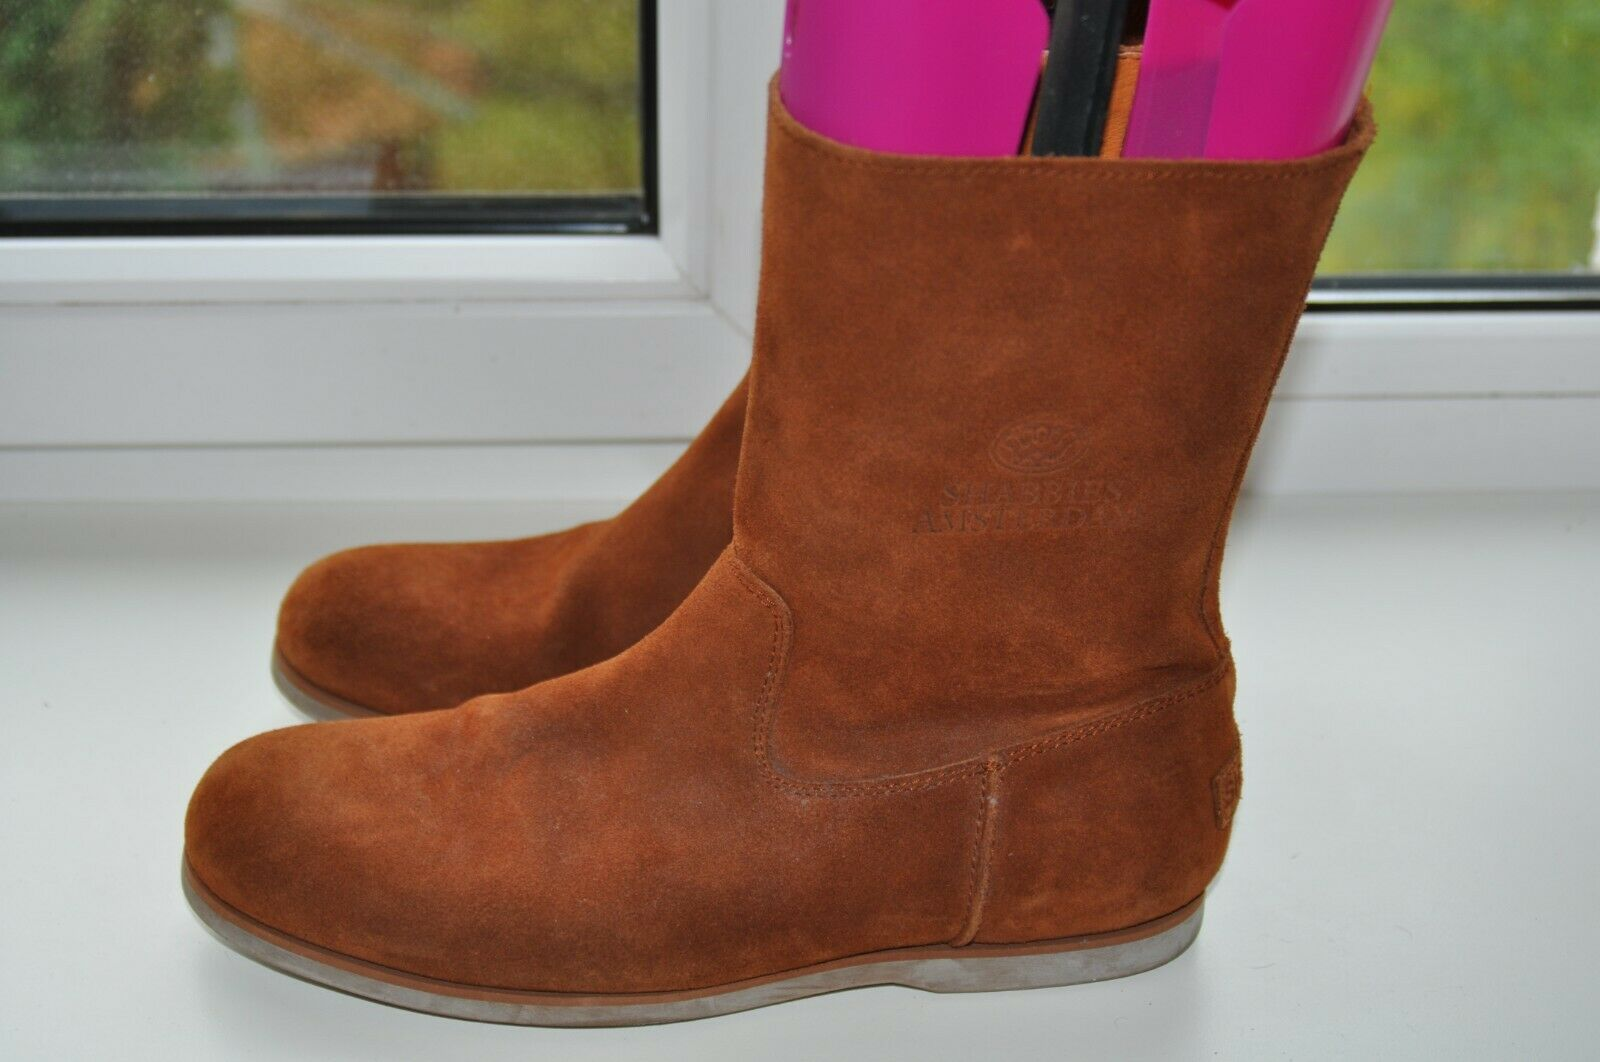 Shabbies Amsterdam Mens Brown Suede Leather Boots Size EU43/UK9